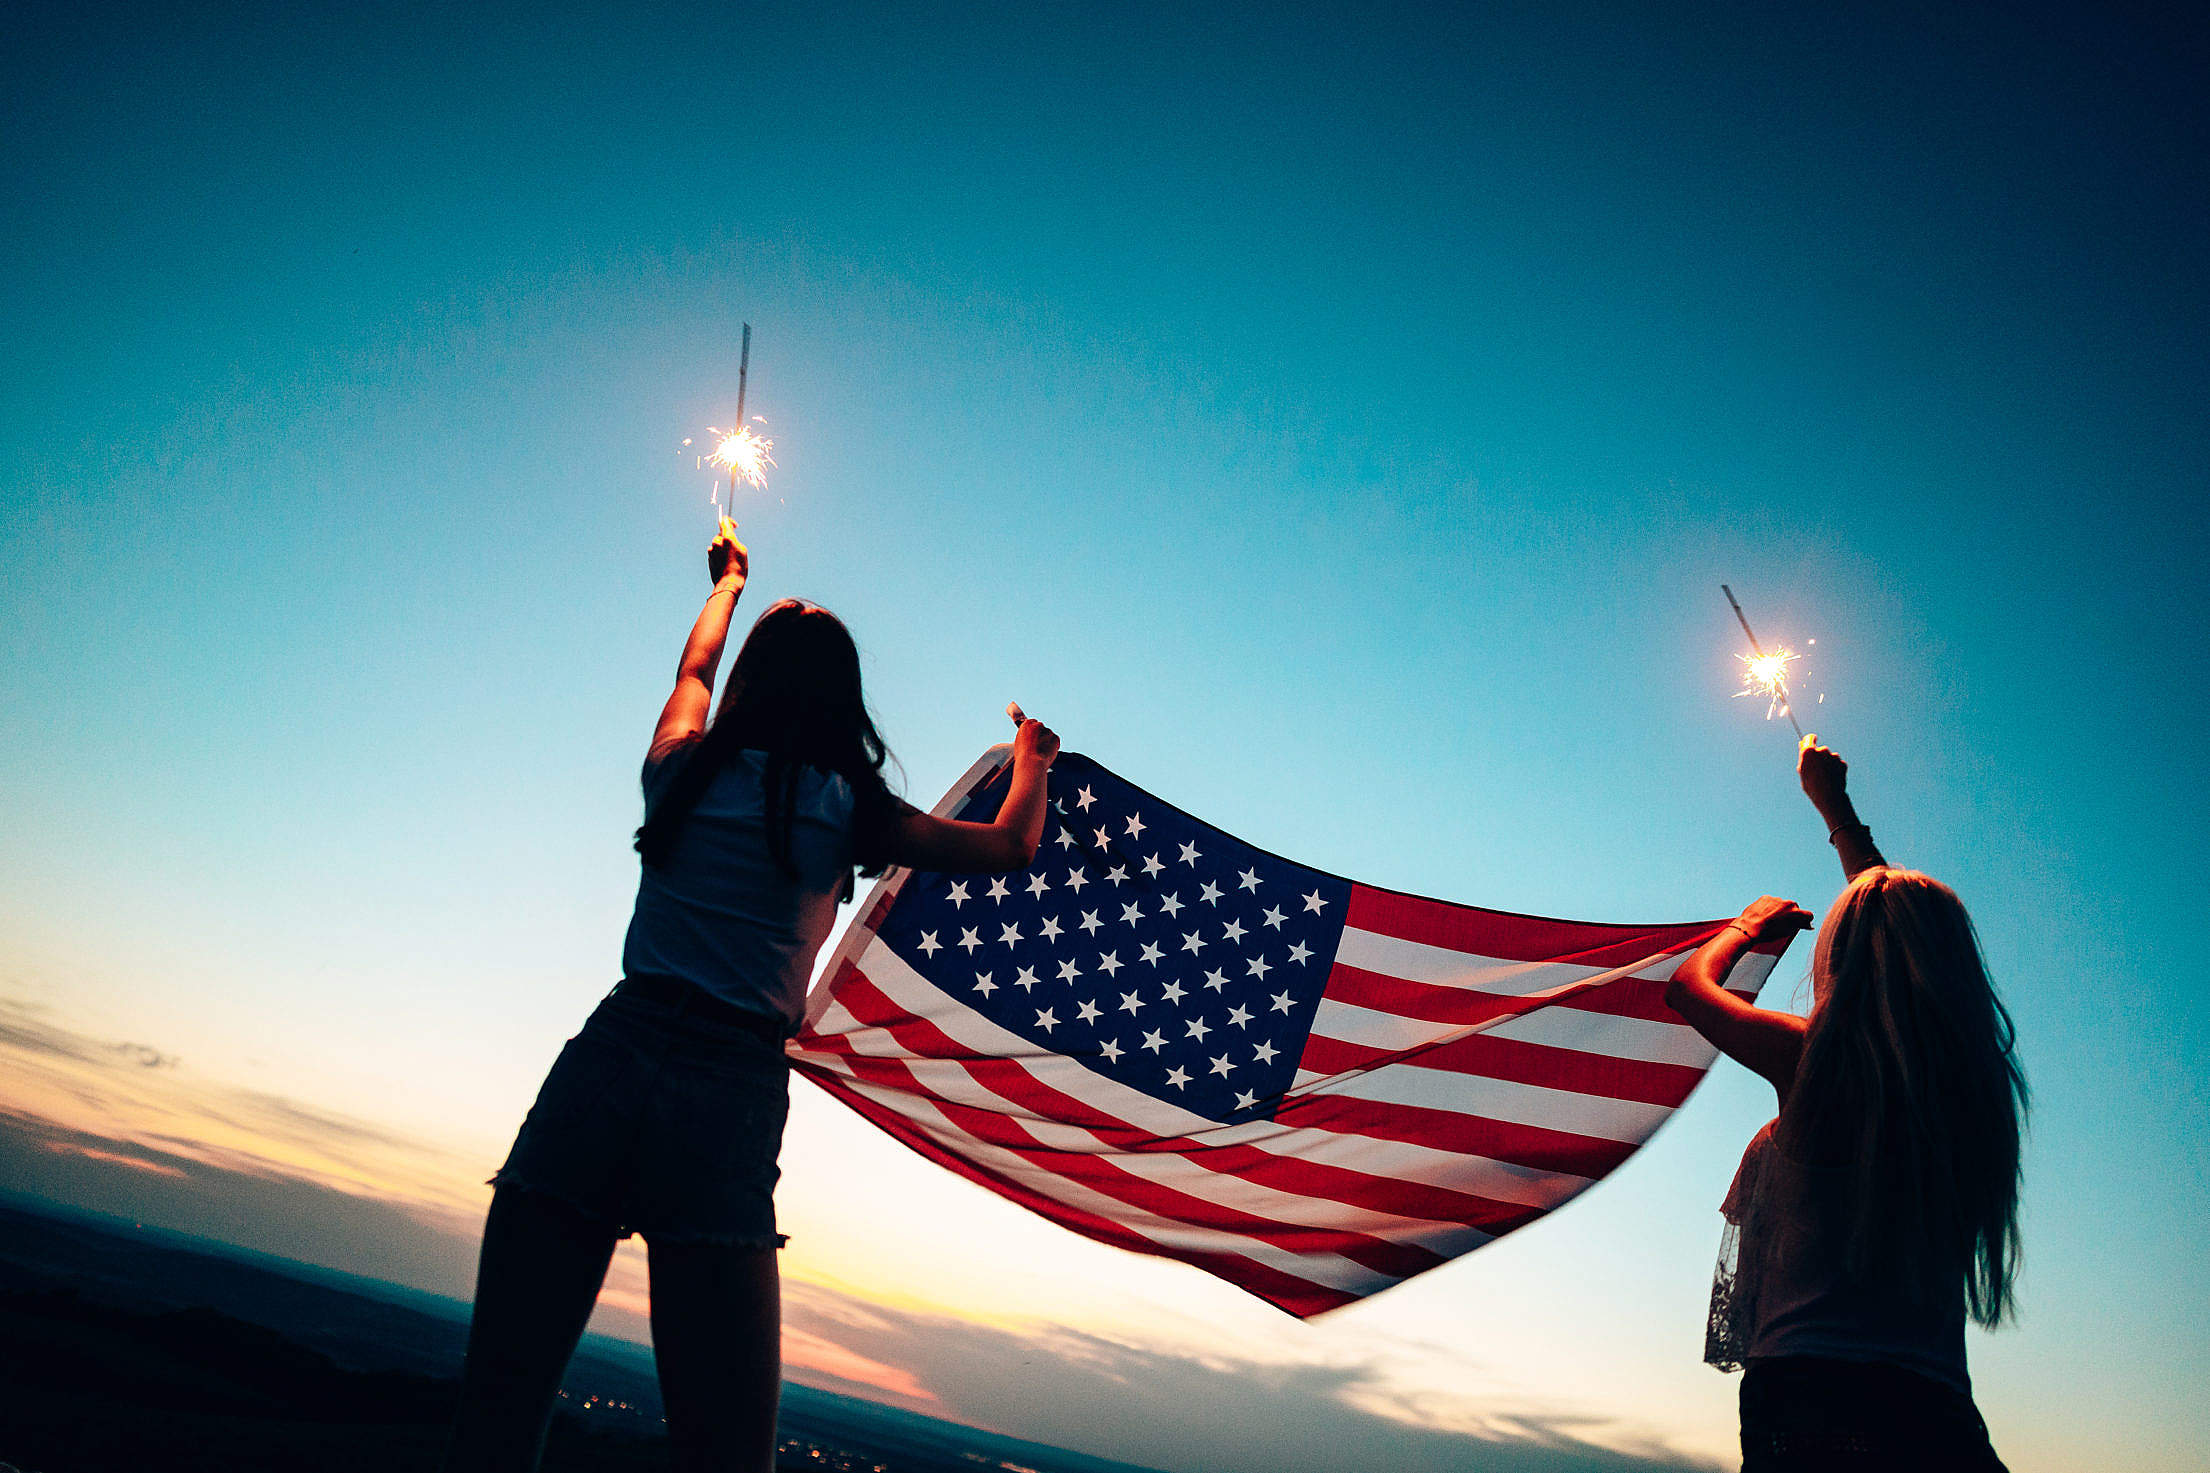 Girls Celebrating Independence Day Free Stock Photo